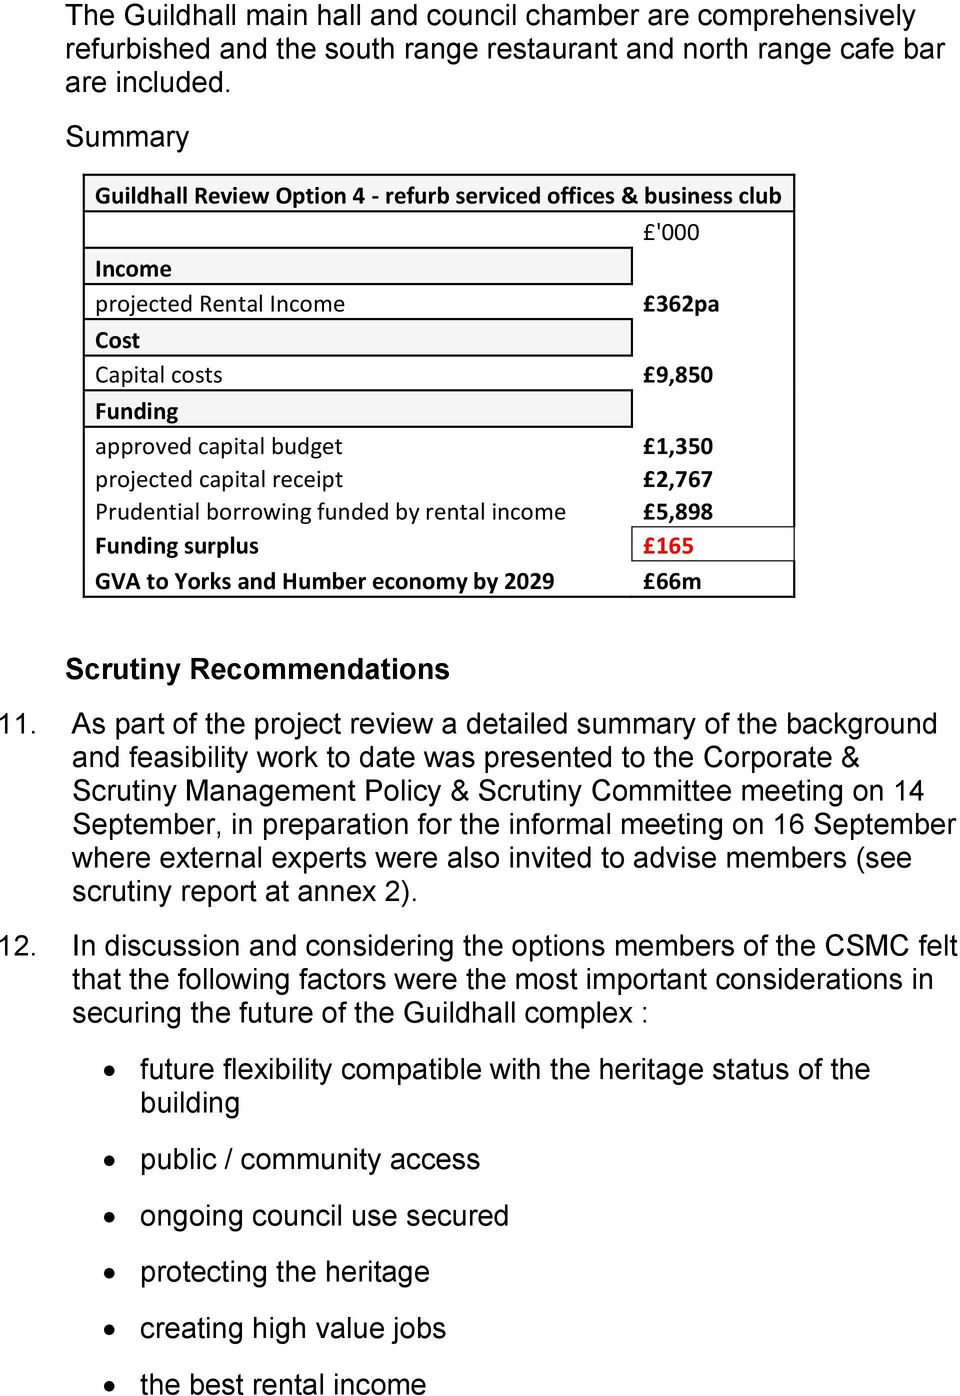 receipt 2,767 Prudential borrowing funded by rental income 5,898 Funding surplus 165 GVA to Yorks and Humber economy by 2029 66m Scrutiny Recommendations 11.